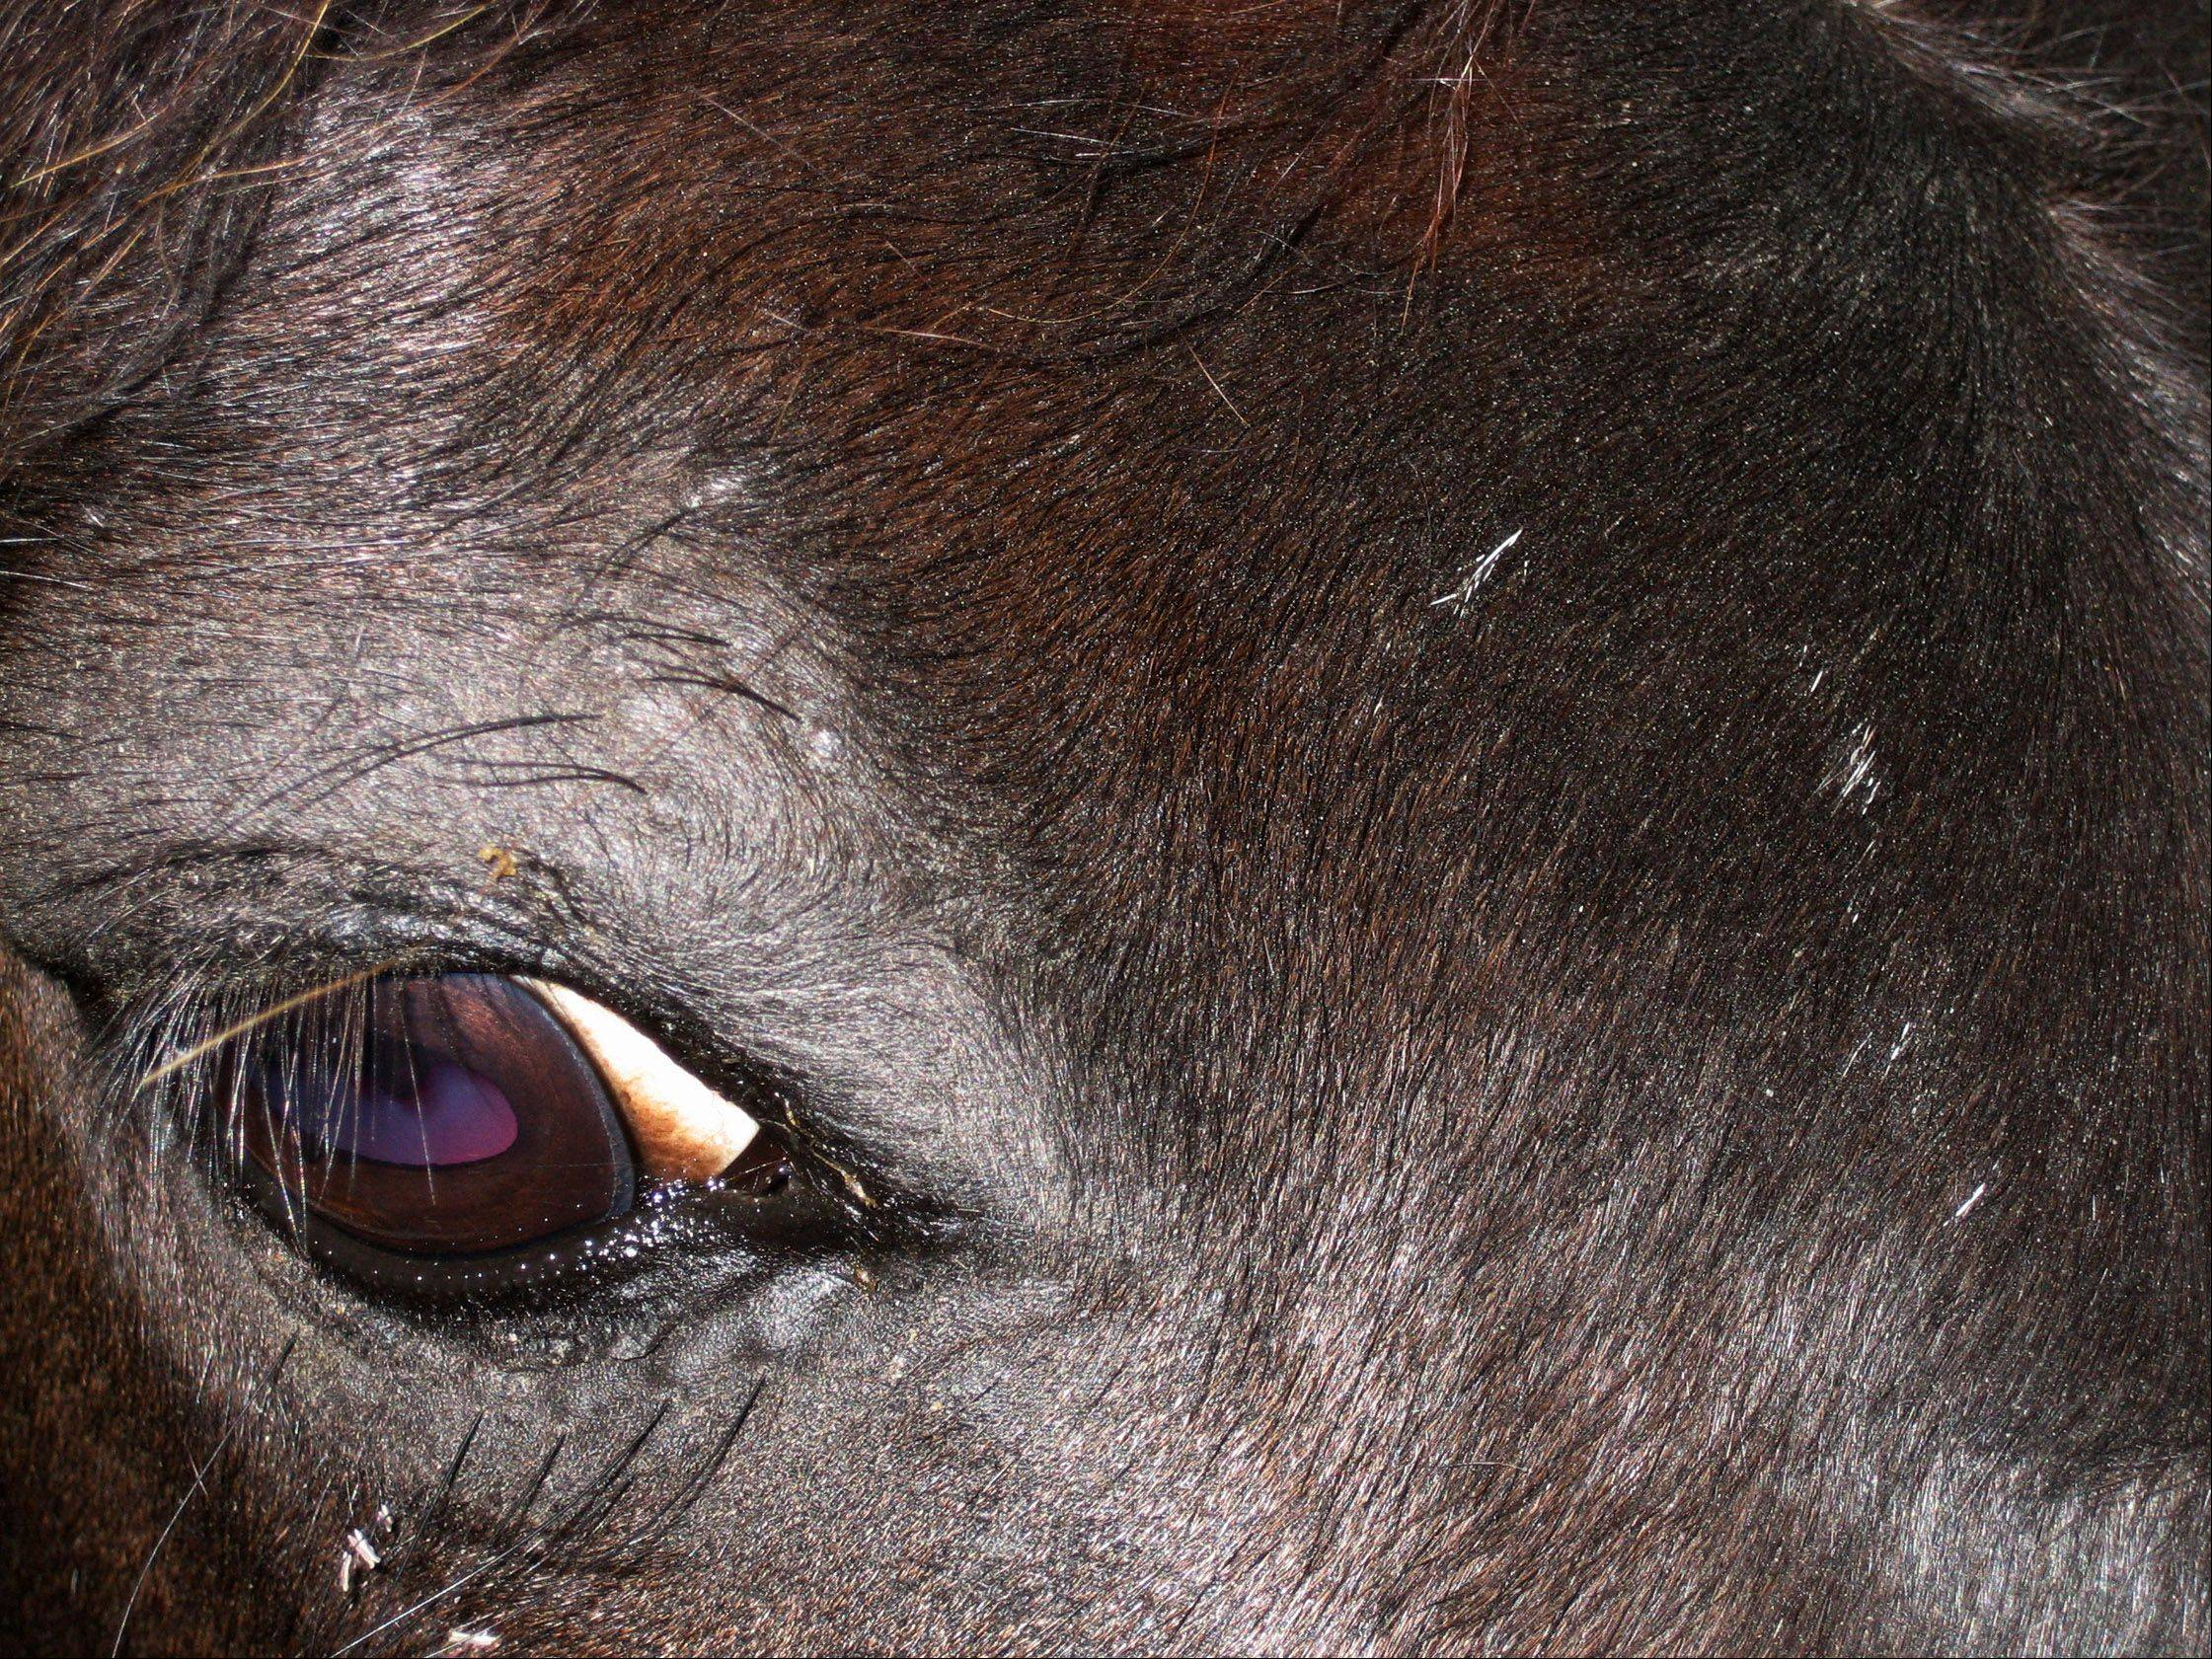 A black horse with a beautiful violet colored eye at Bay Roberts in Newfoundland, Canada in 2009.